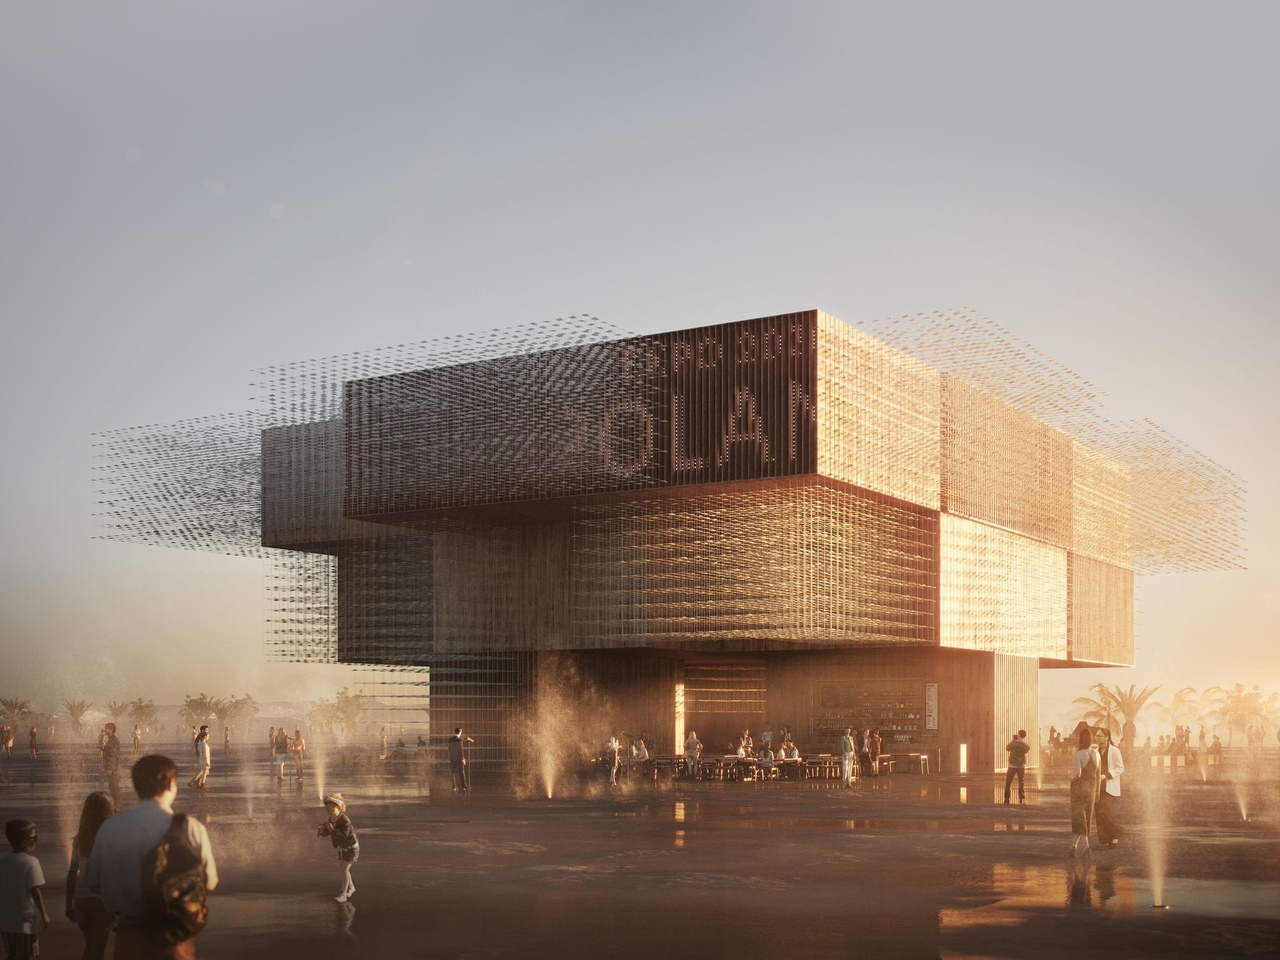 An Inspiring Pavilion for Poland in World Expo 2020 by WXCA